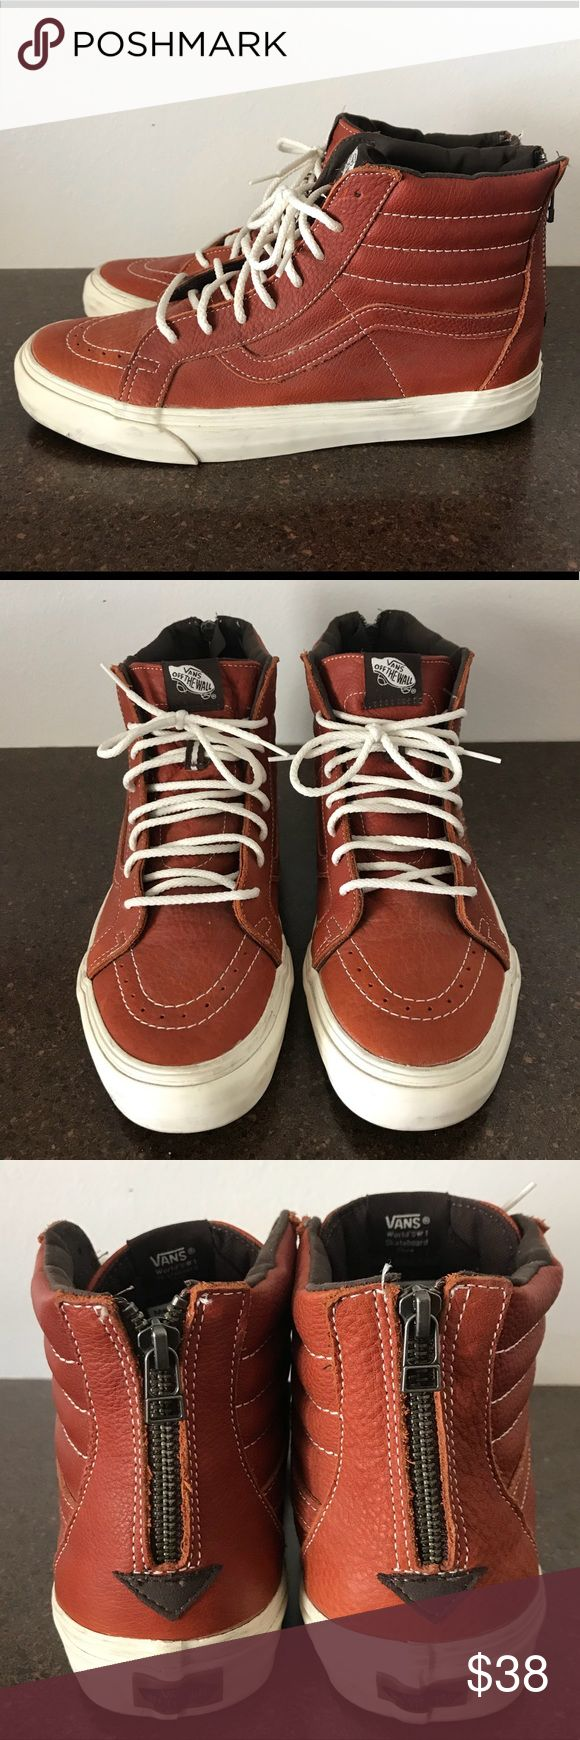 """California Sk8 Hi Vans These are the """"California"""" edition skate high vans, they are made of a tumbled leather and have been gently worn once Vans Shoes Sneakers"""